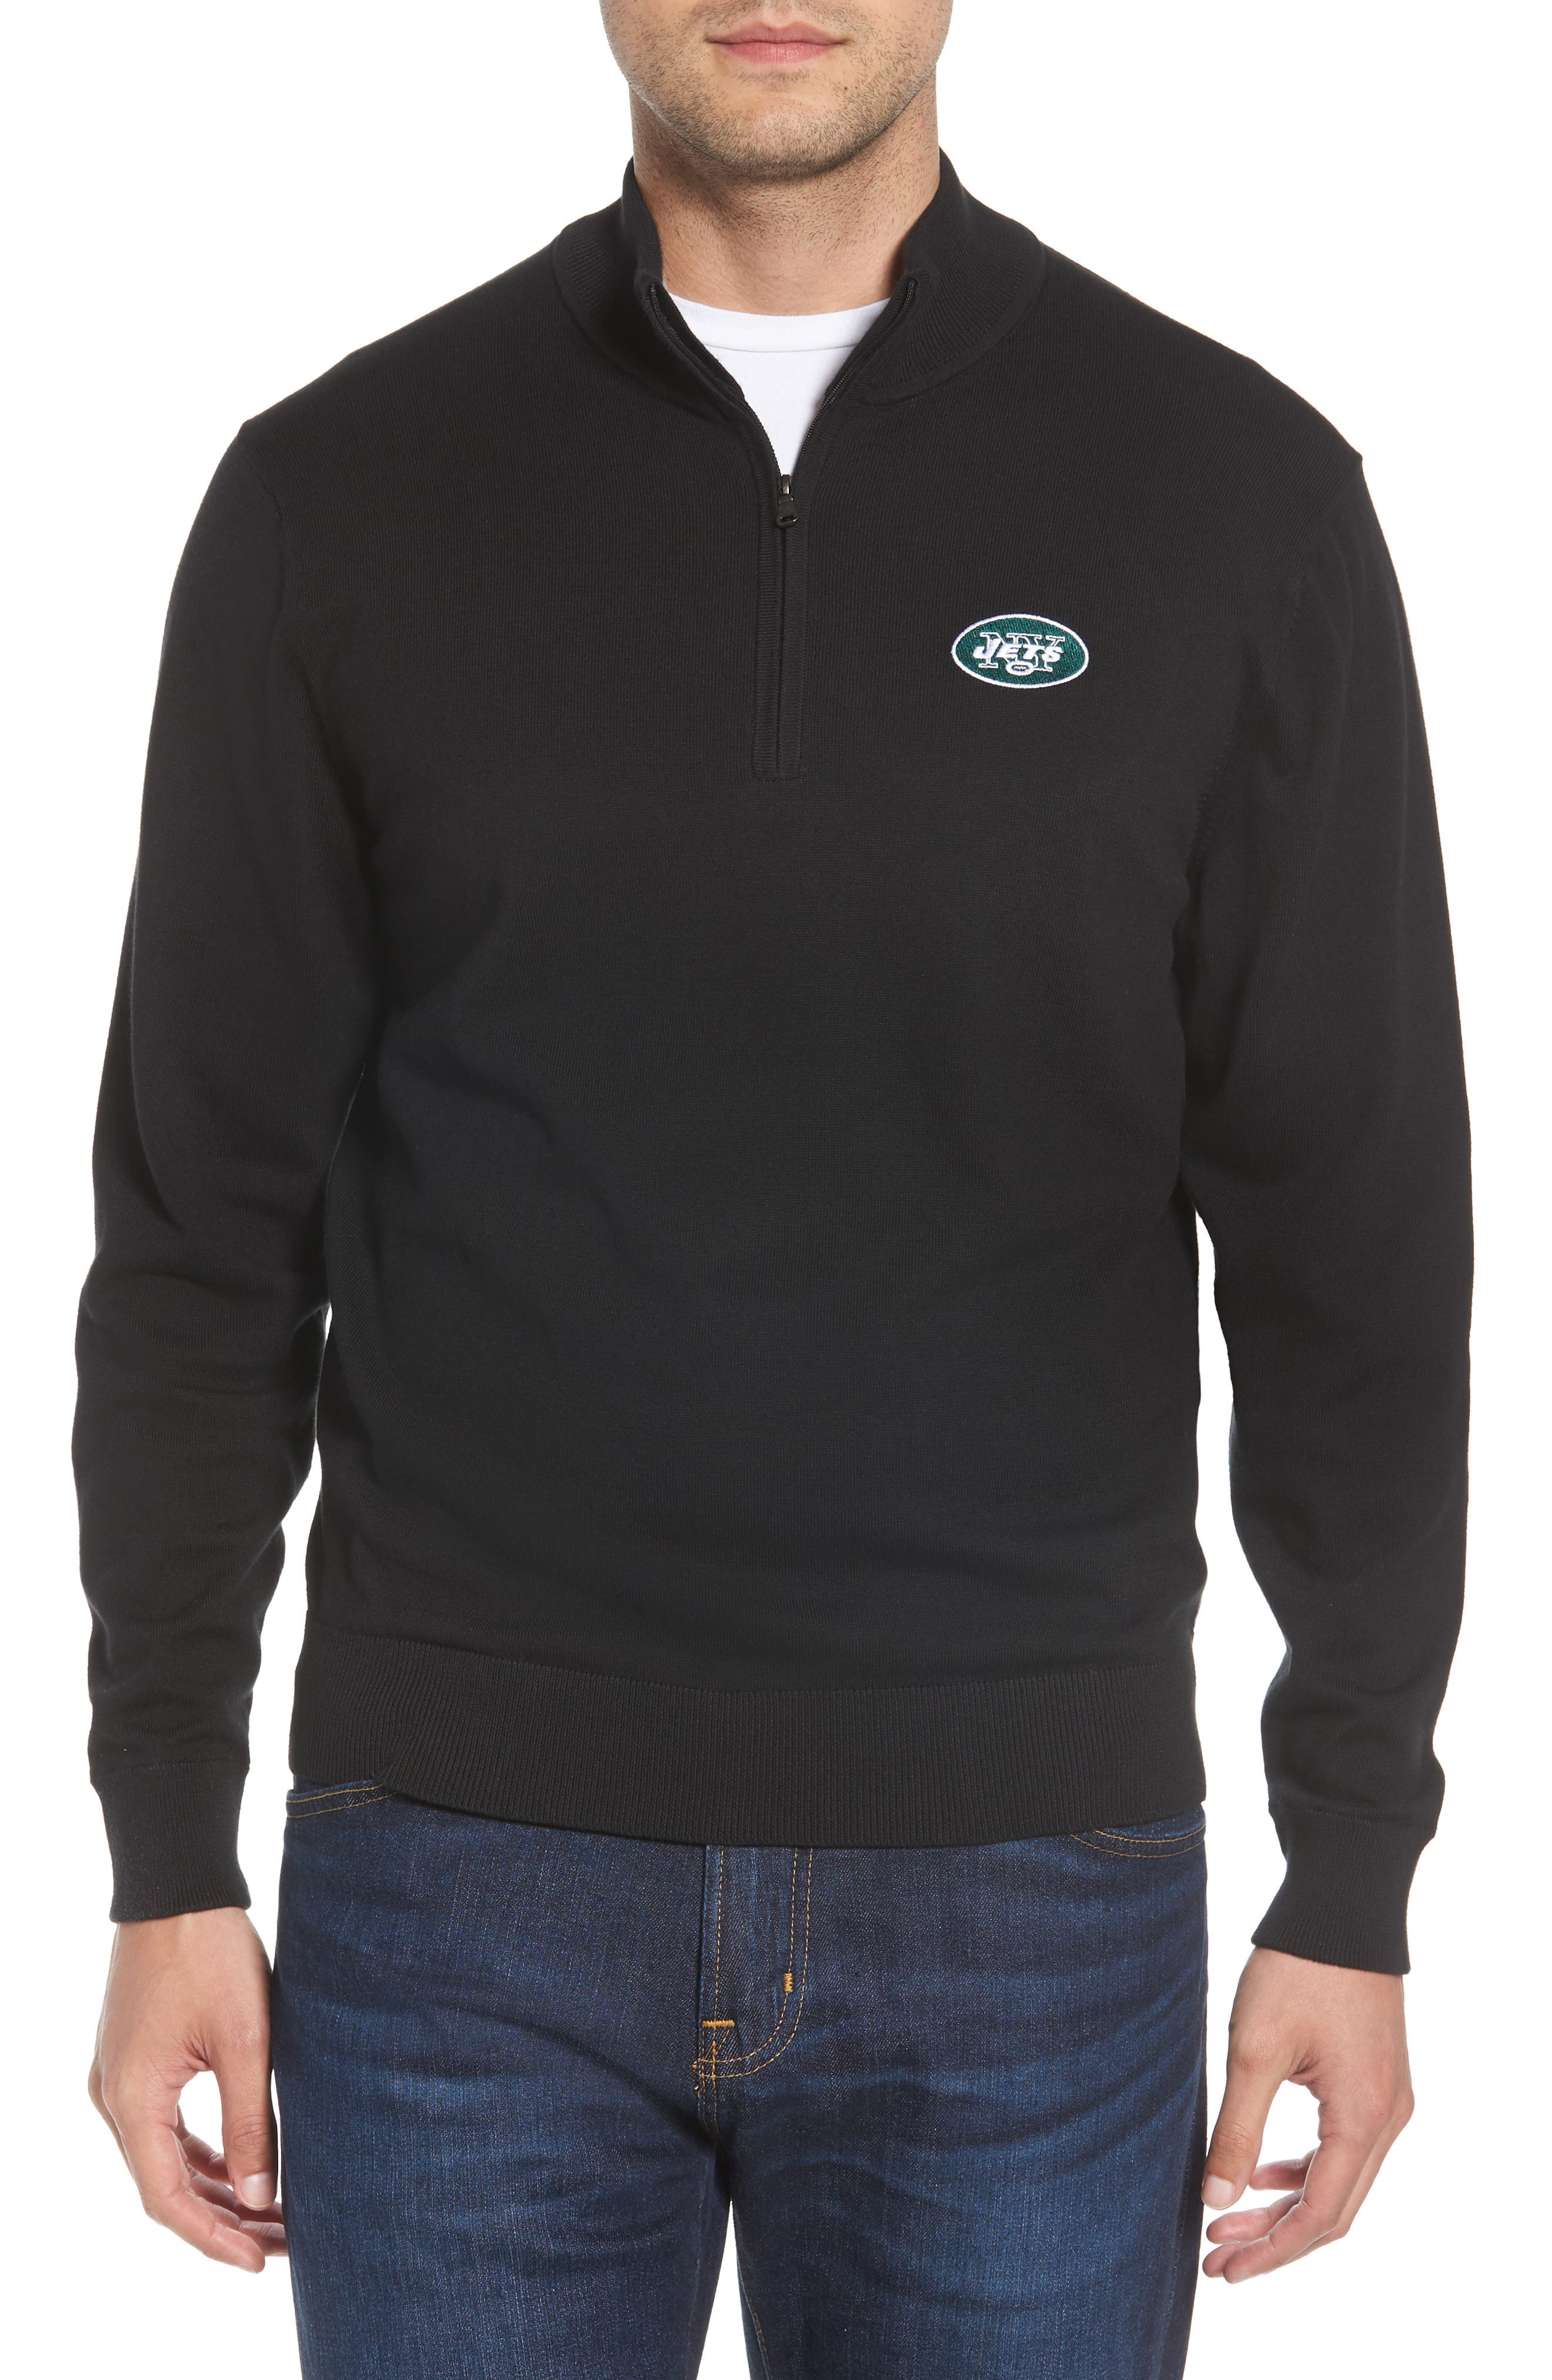 New York Jets - Lakemont Regular Fit Quarter Zip Sweater,                             Main thumbnail 1, color,                             BLACK